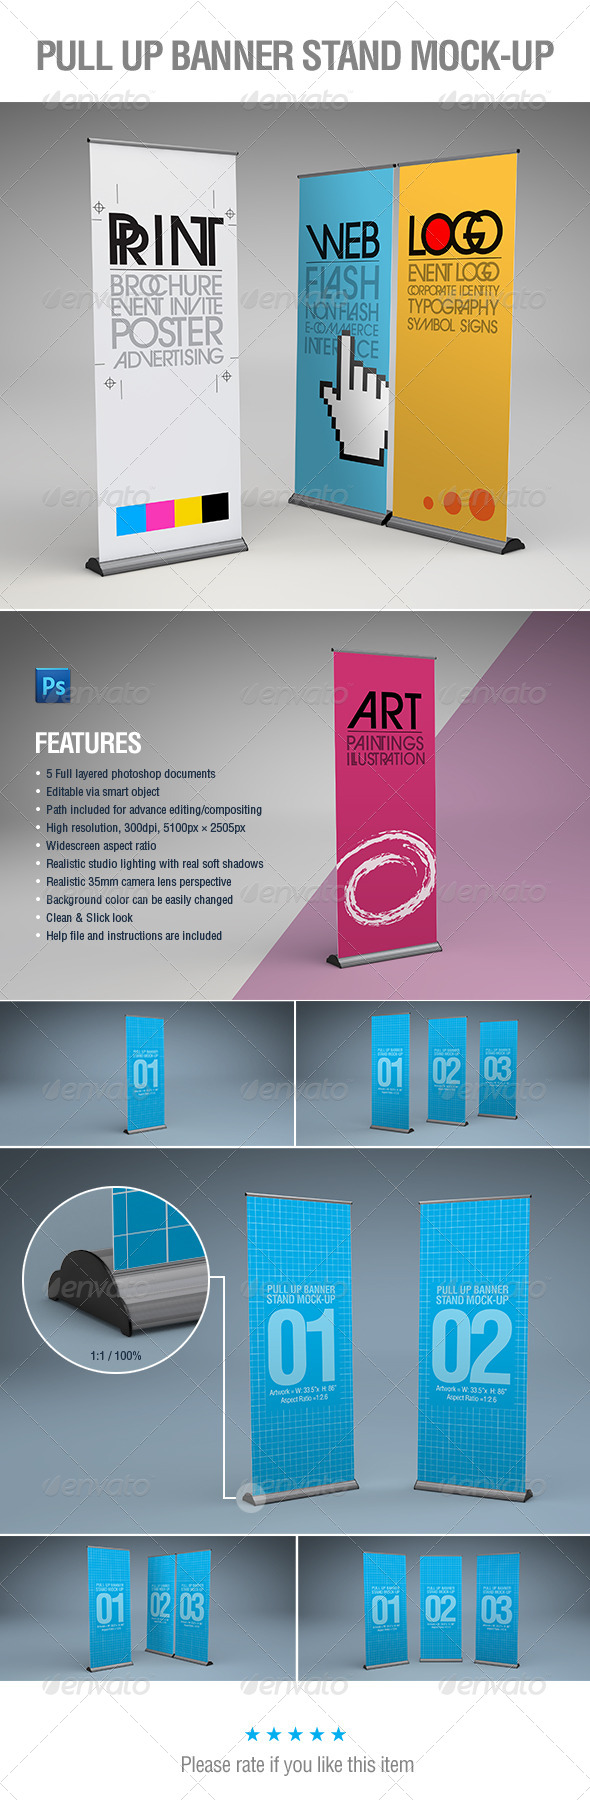 Exhibition Stand Design Mockup Psd : Stand up banner psd mockup images